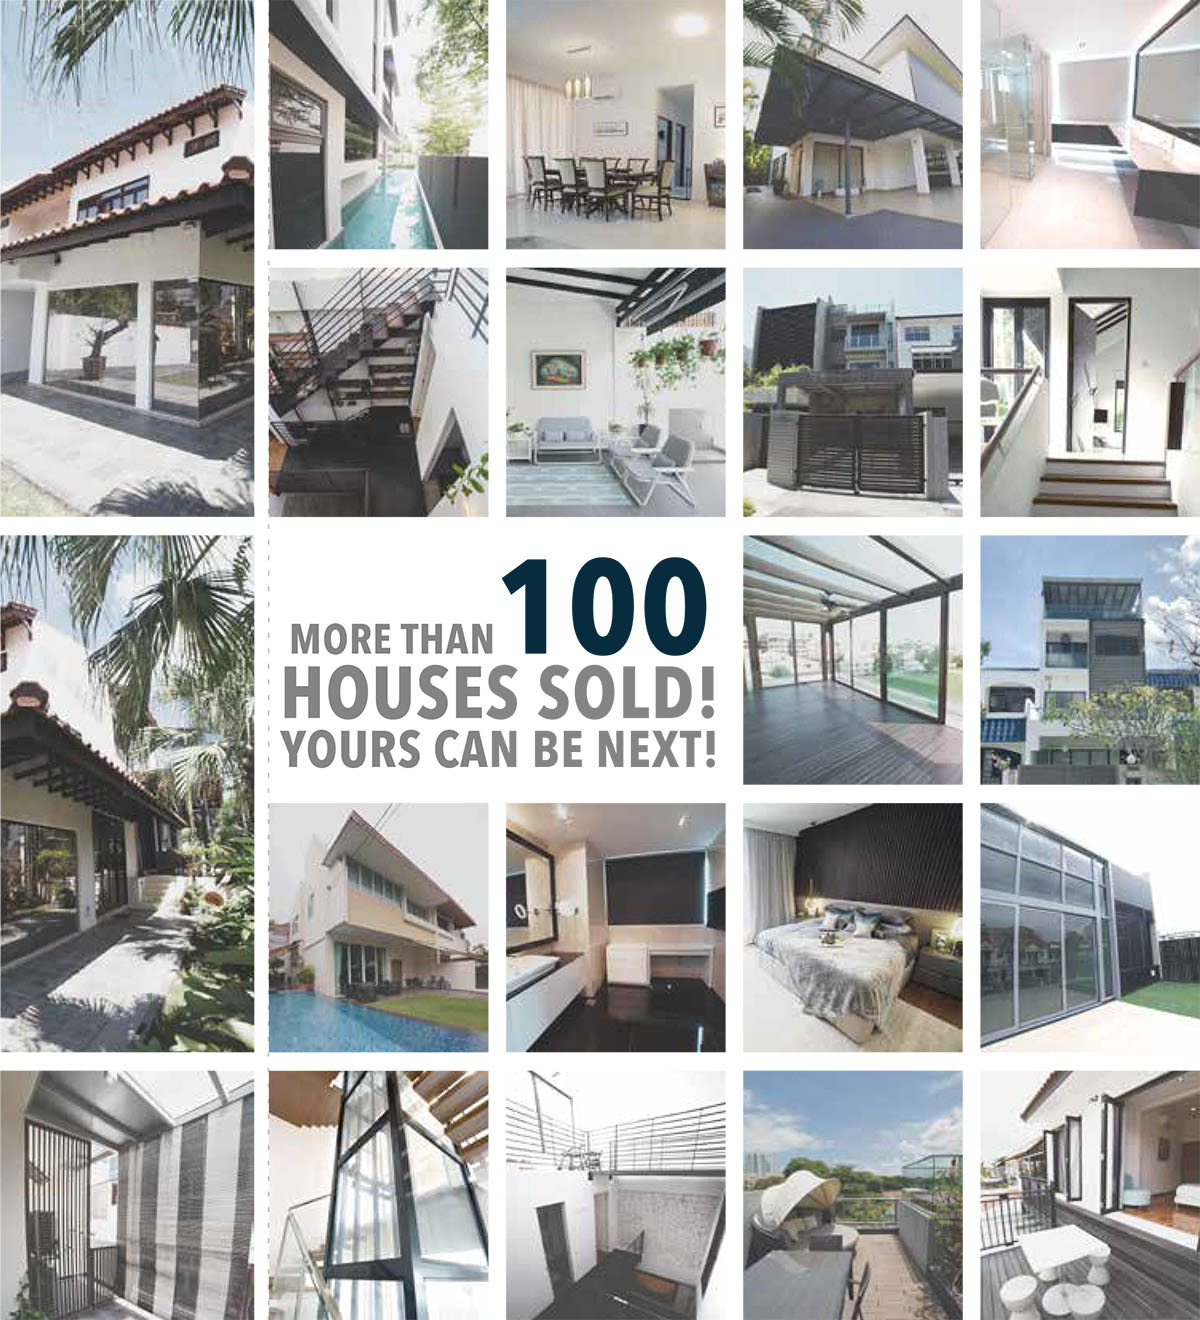 More Than 100 Houses Sold